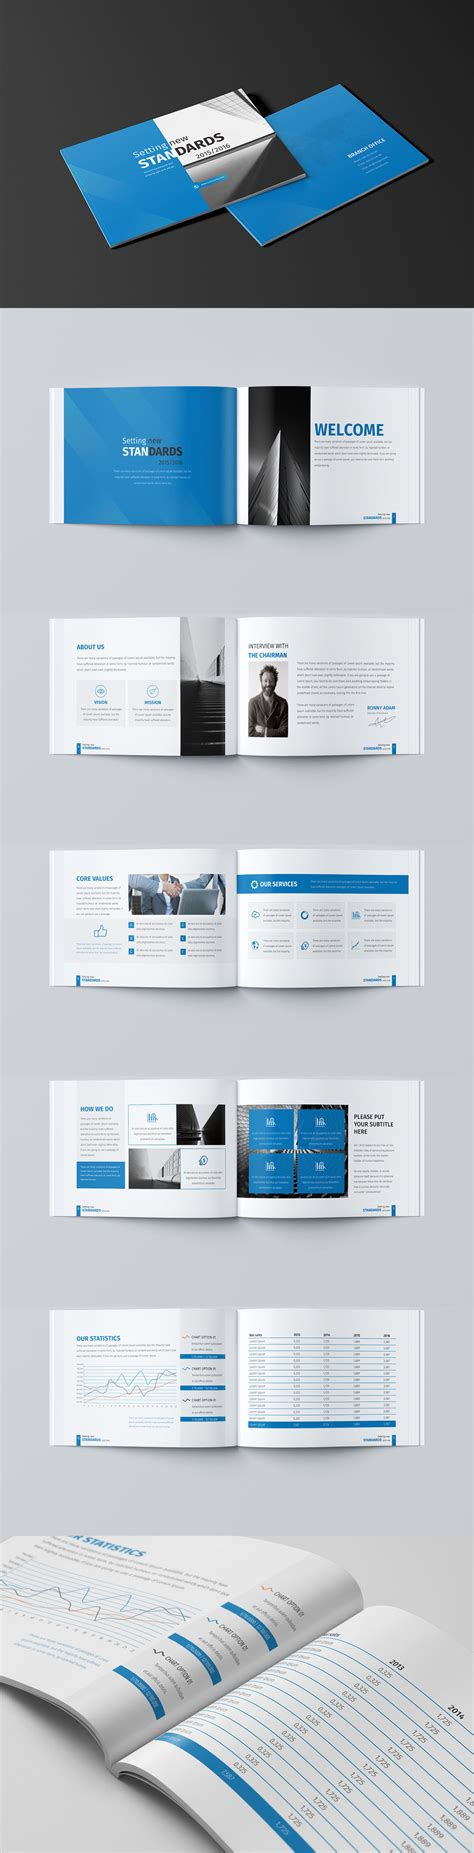 Mini Business Brochure 12 Pages A5 Template Indesign Indd Brochure Templates In 2018 A5 Brochure Template Indesign